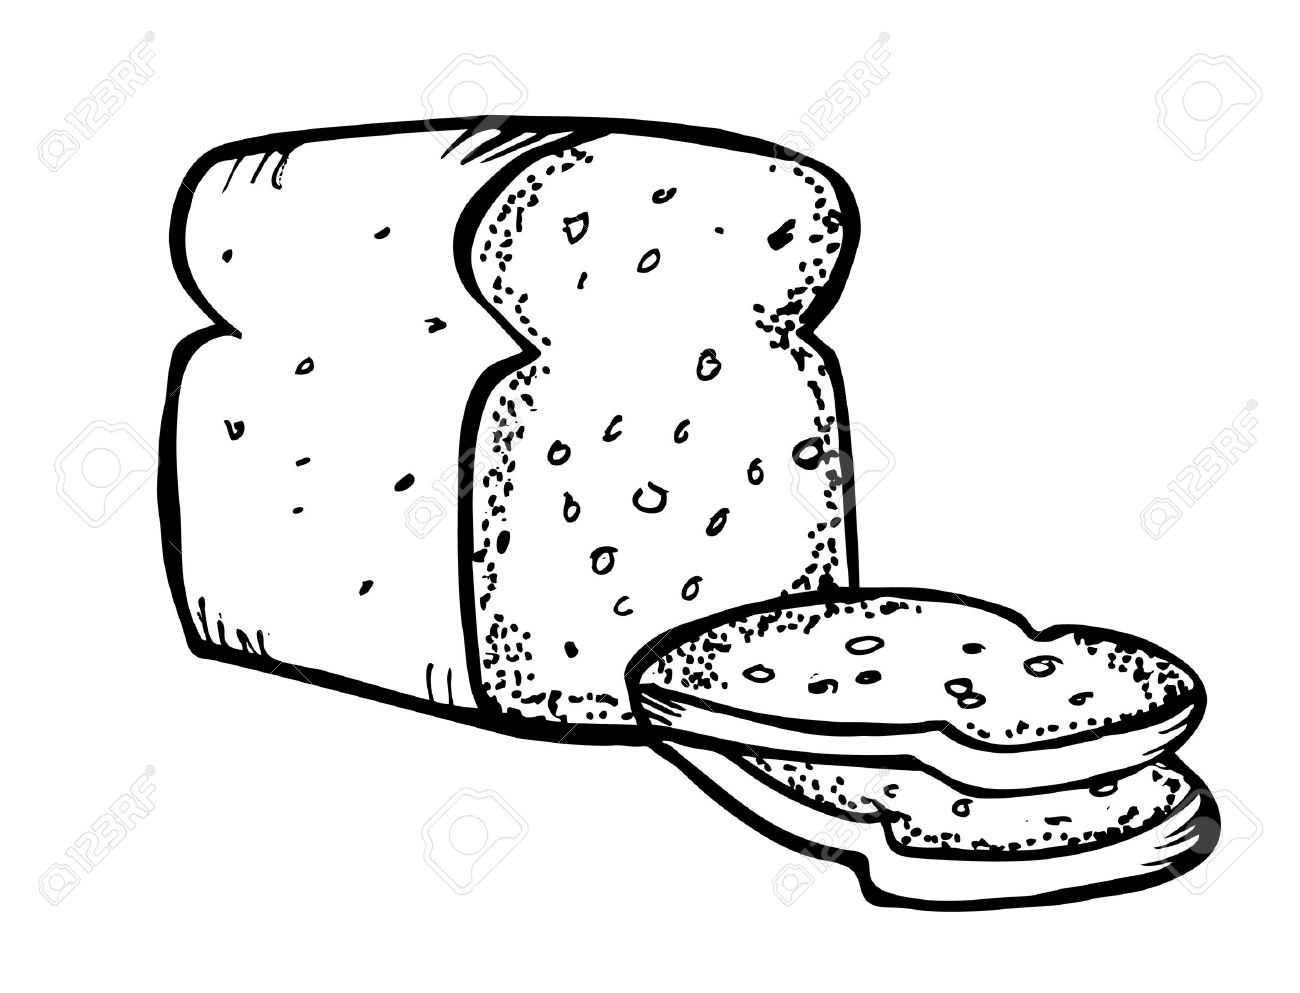 Bread clipart black and white. Station